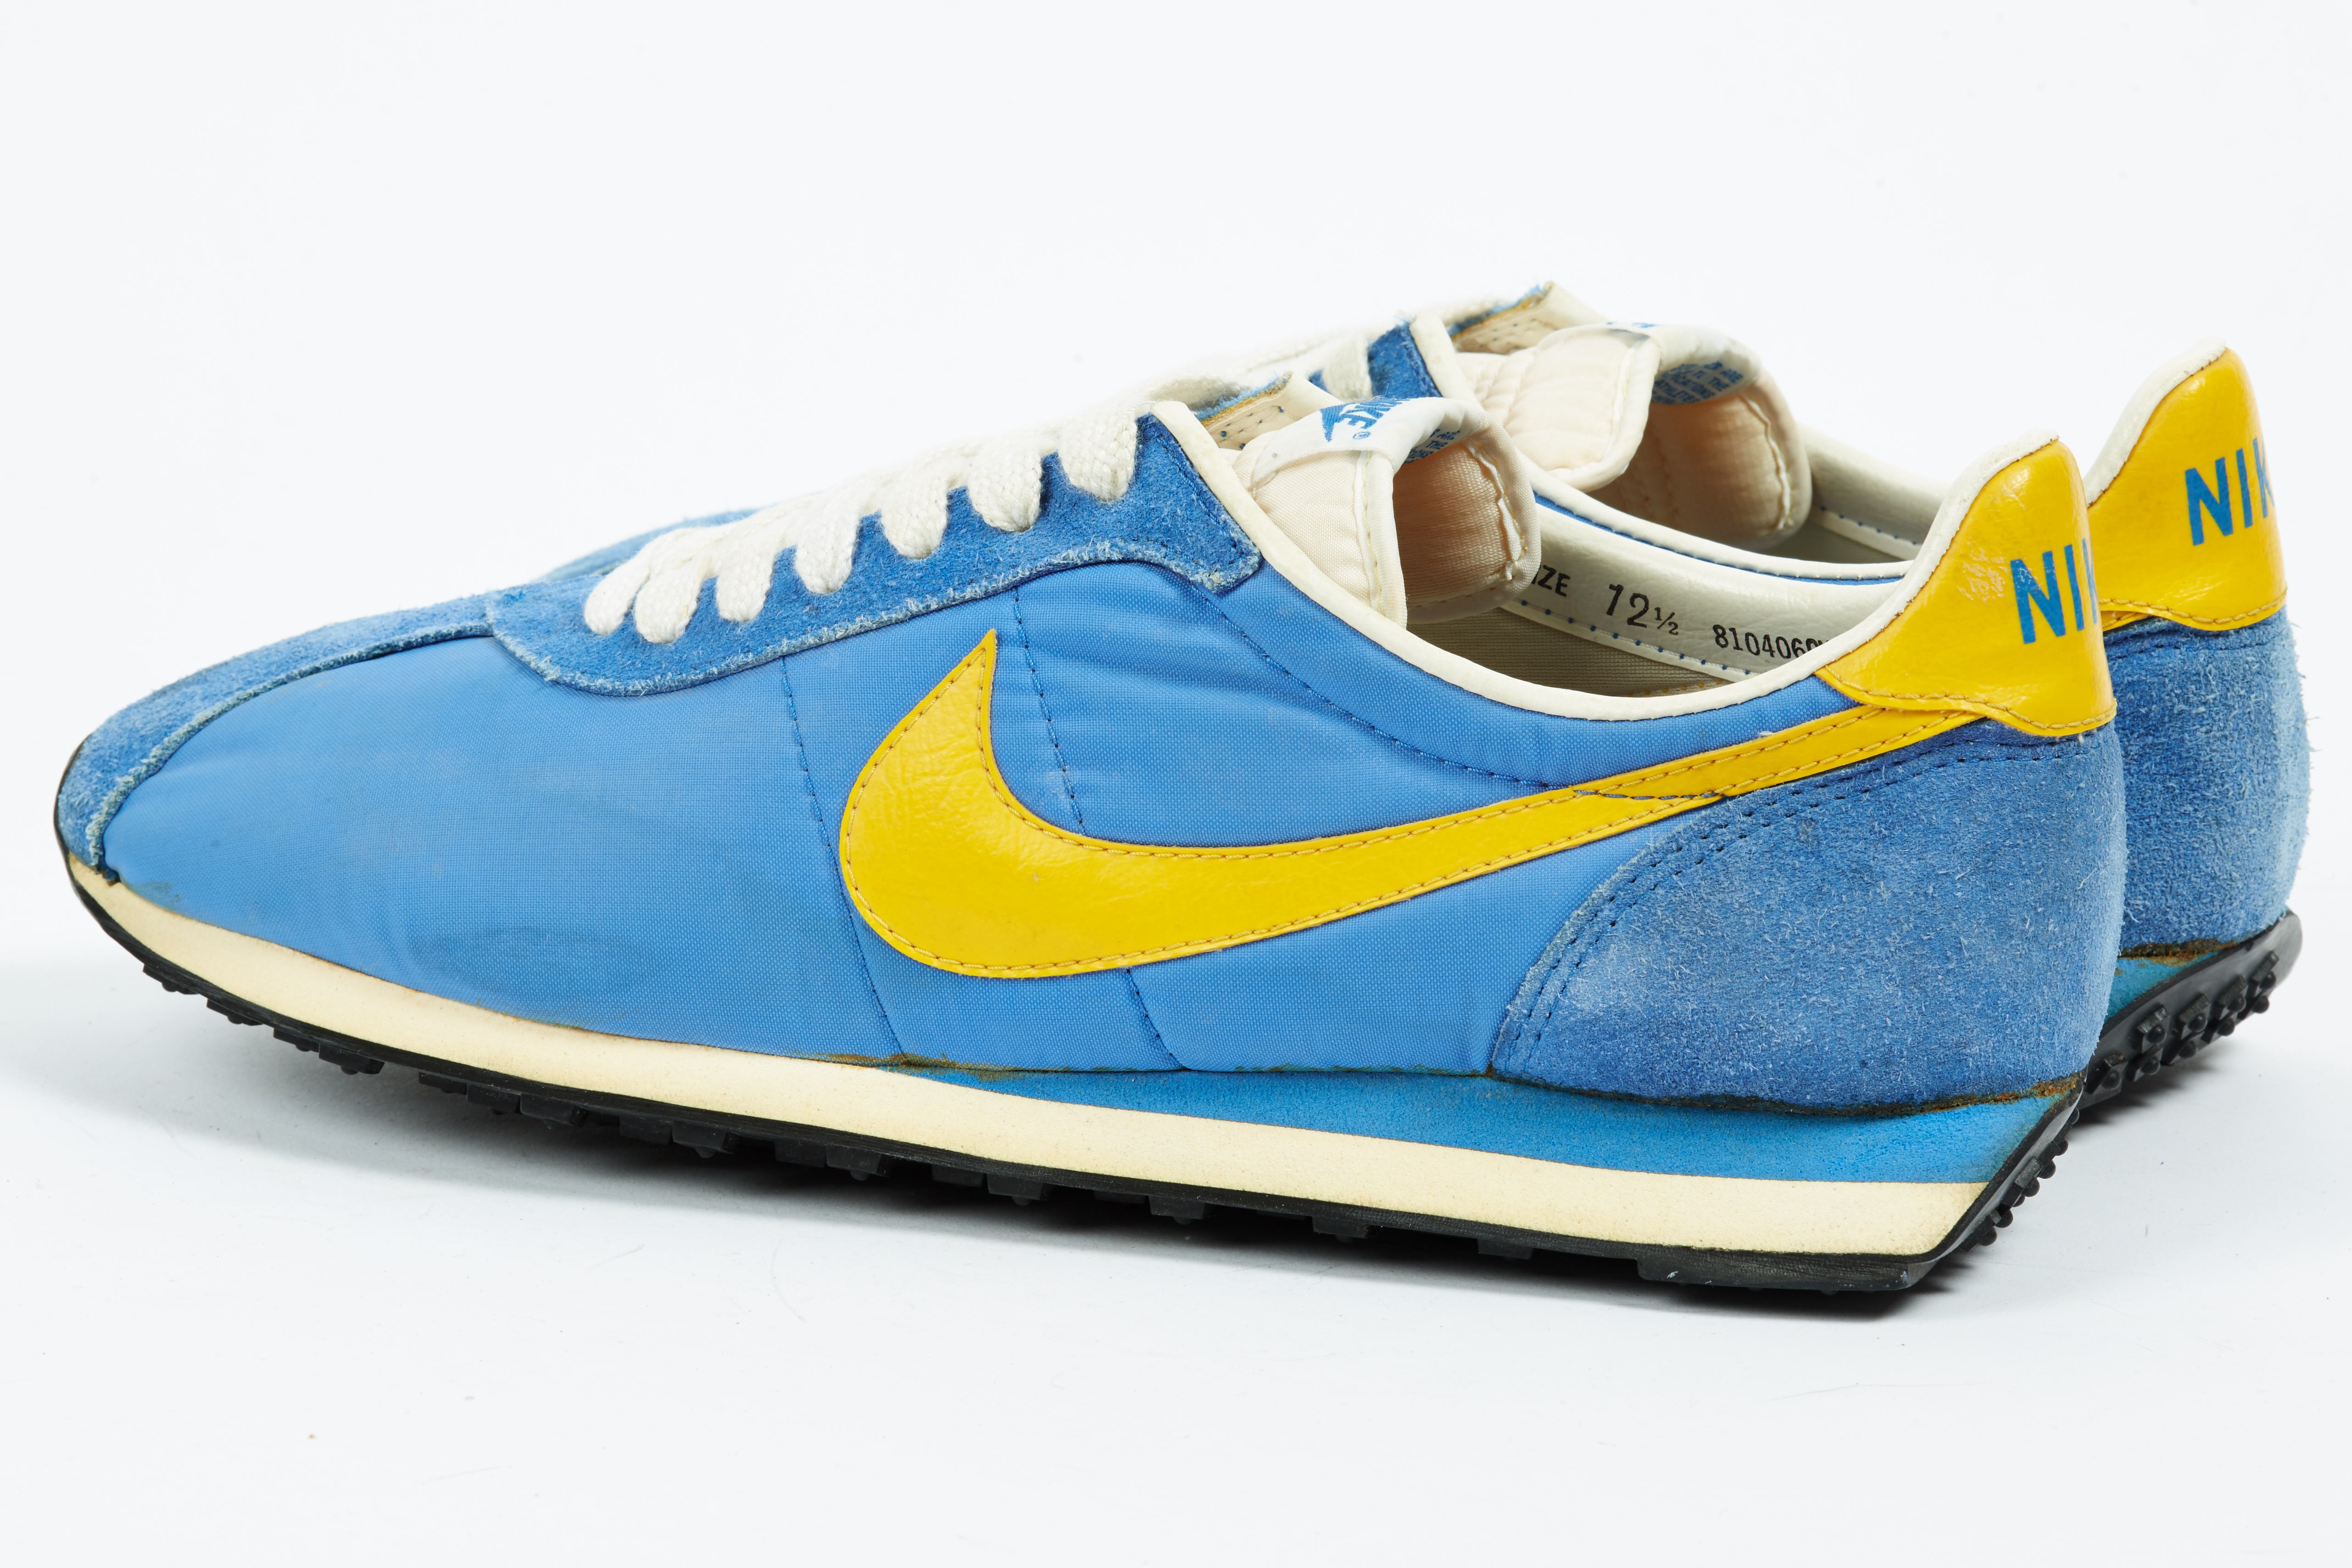 Vintage 1981 Nike Waffle Trainer - Shoes Your Vintage. )  c57ad607e